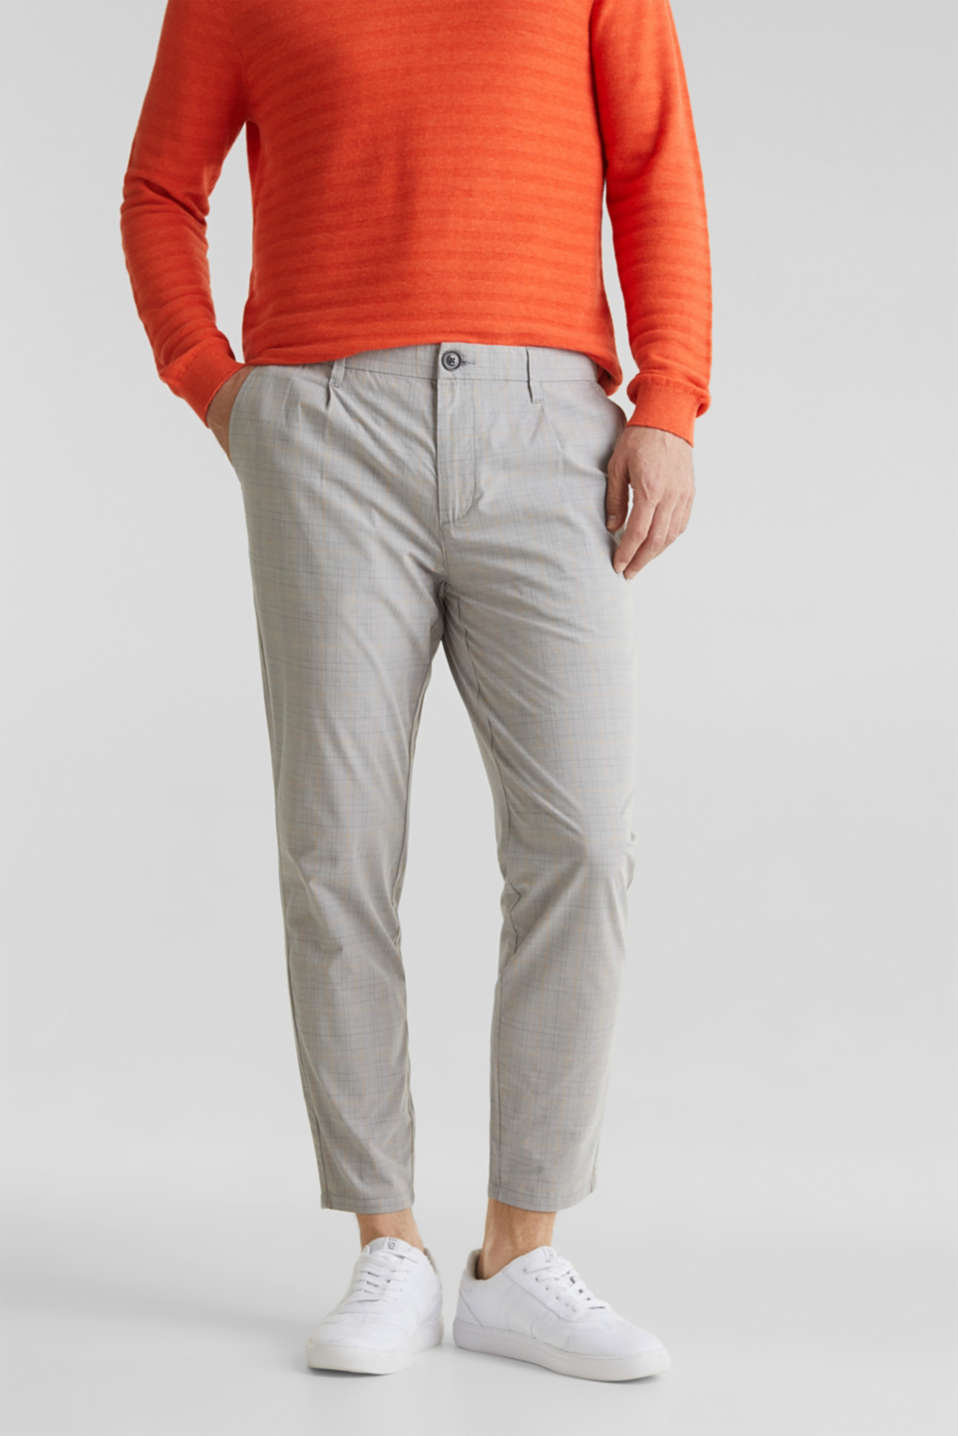 Esprit - Prince of Wales check chinos with stretch and organic cotton